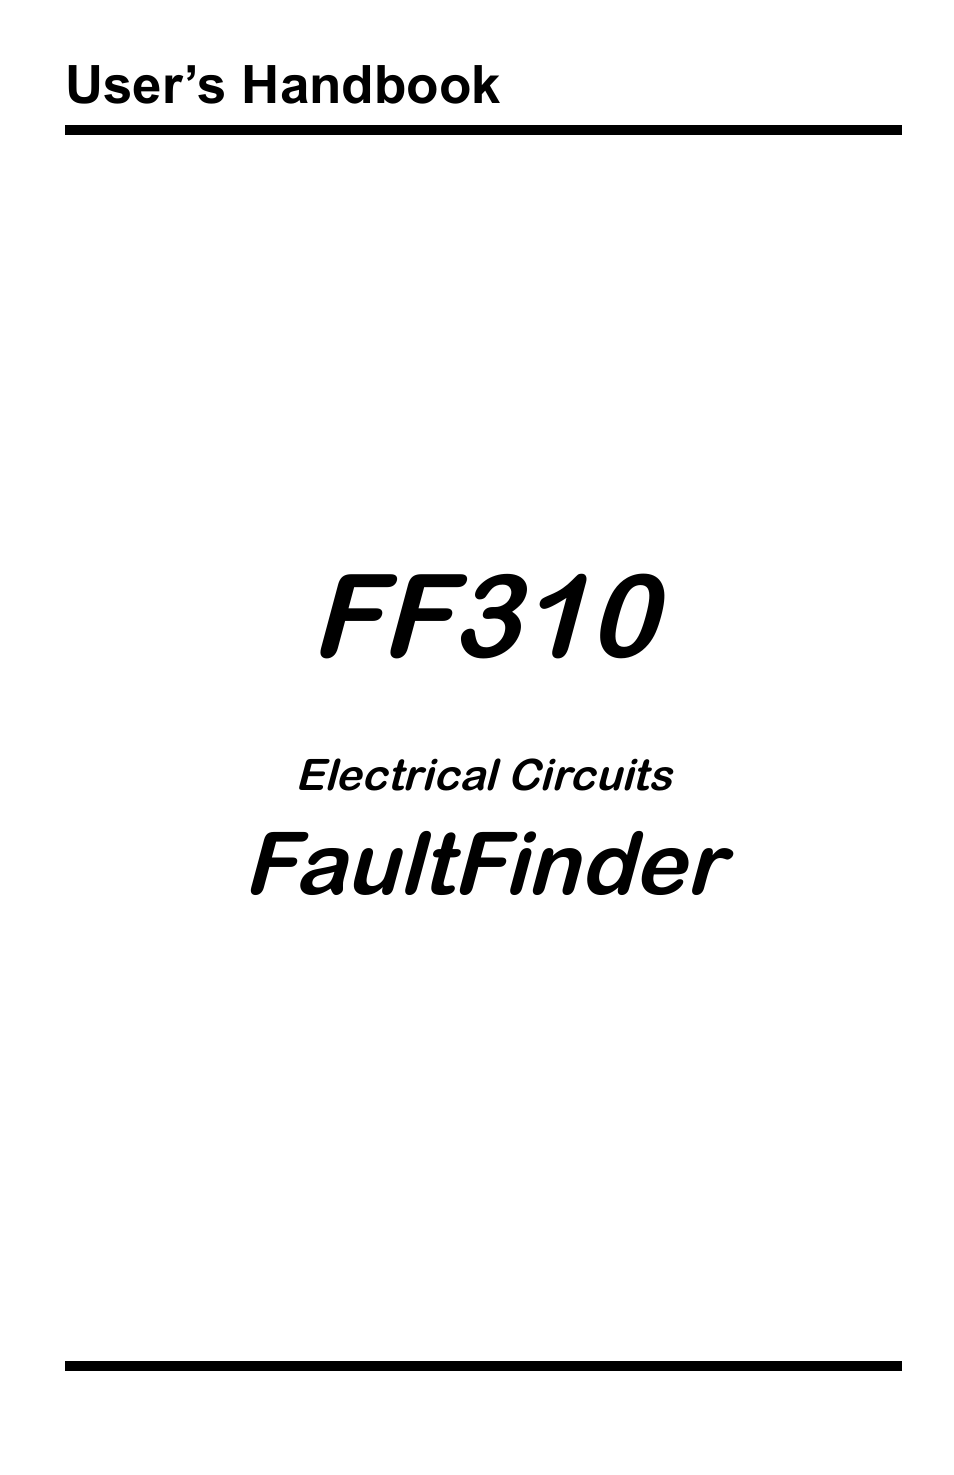 General Technologies FF310 Fault Finder for Electrical